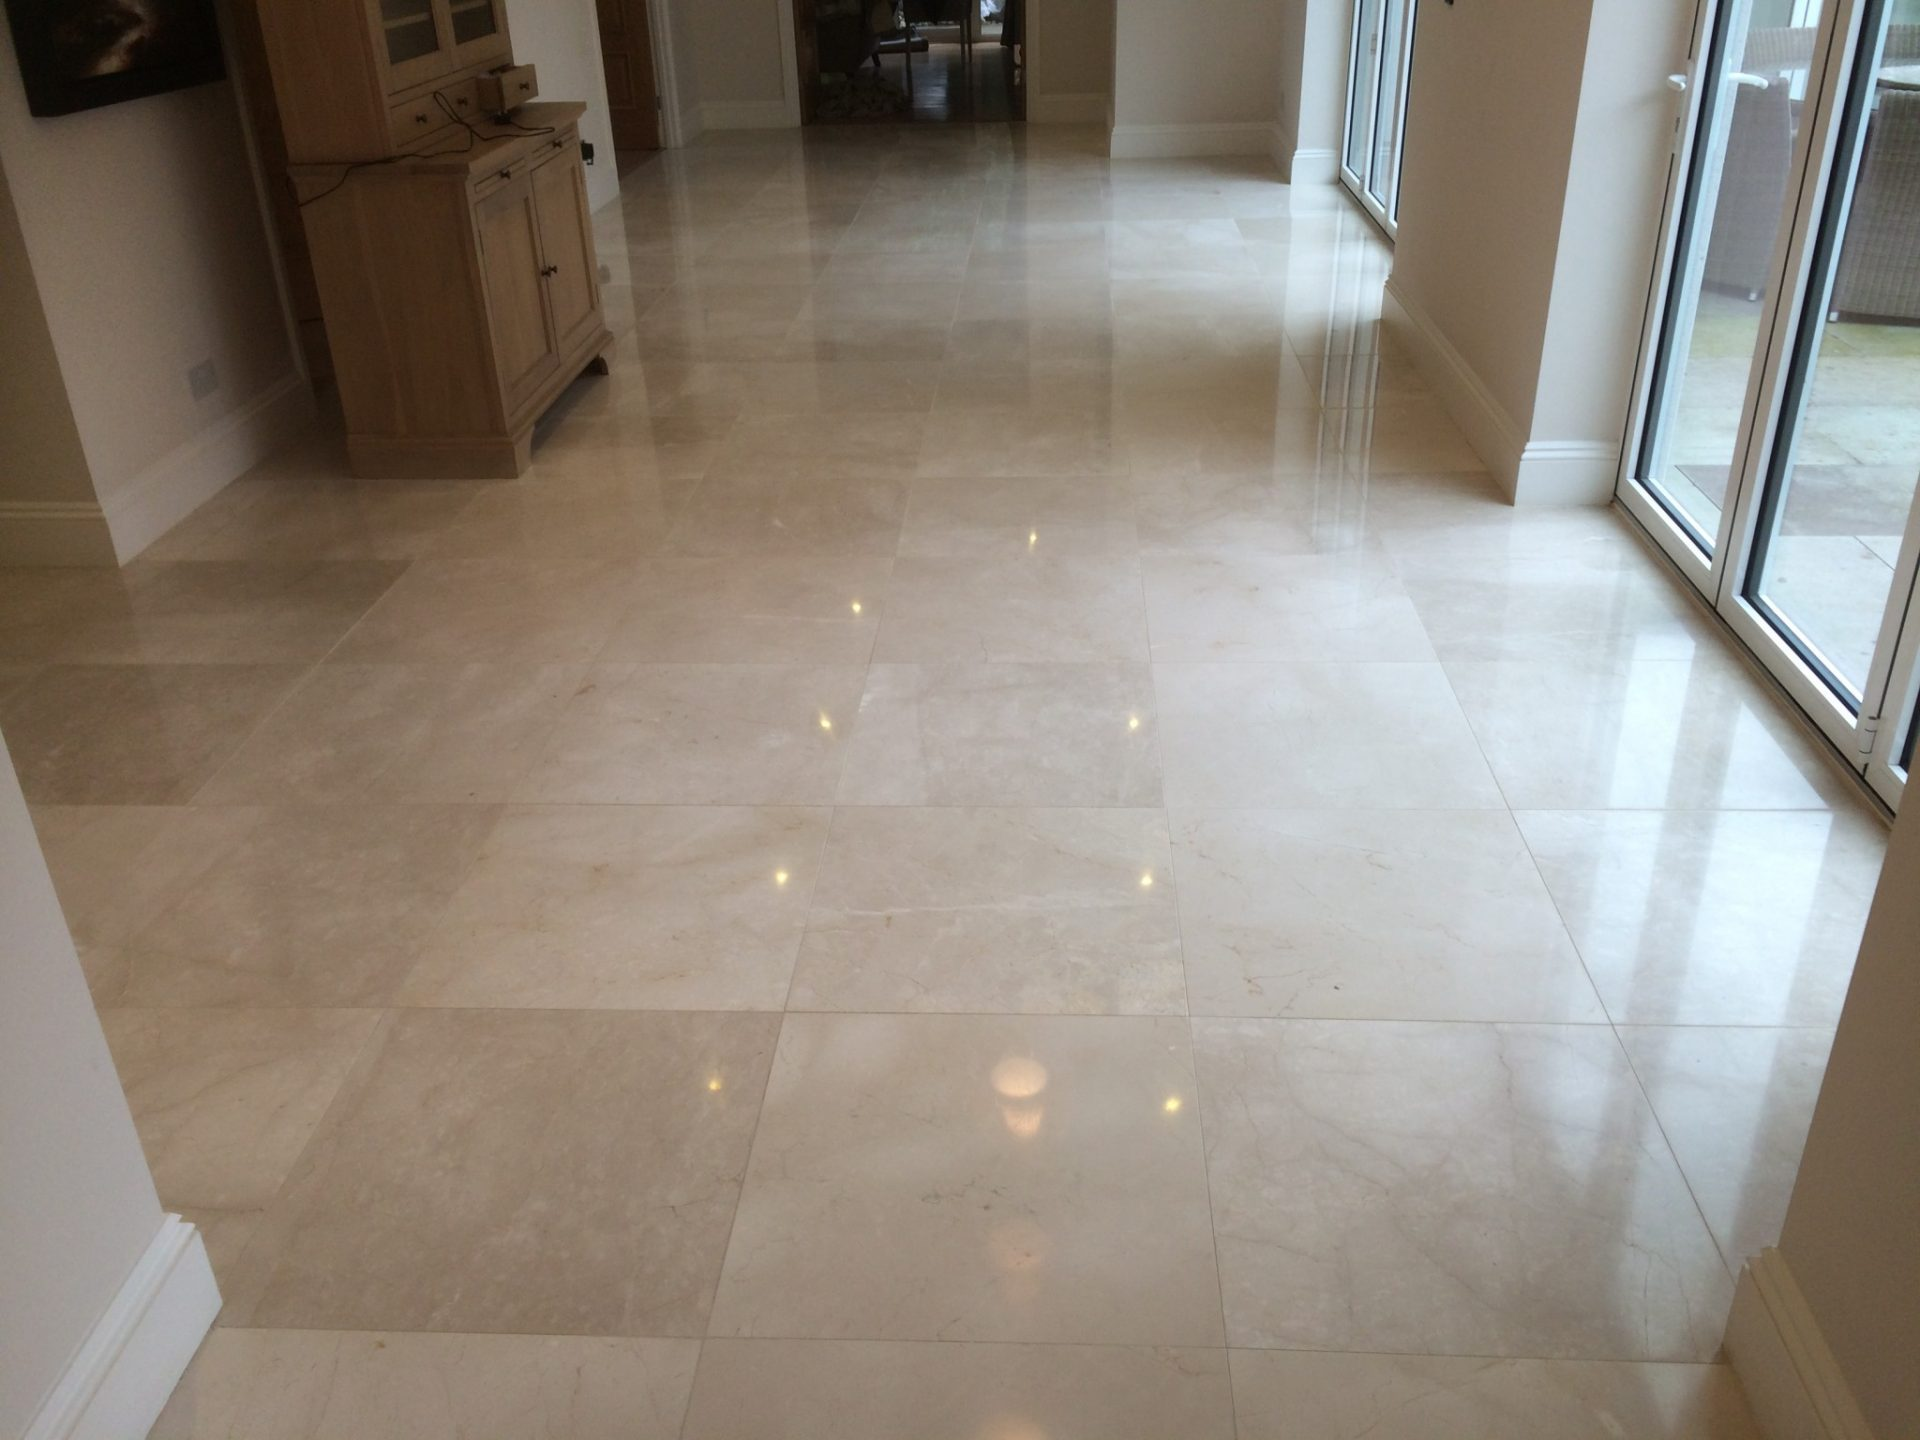 Marble Floor Cleaning, Restoration, Repairing, Polishing And Sealing. Barnt  Green, Worcestershire